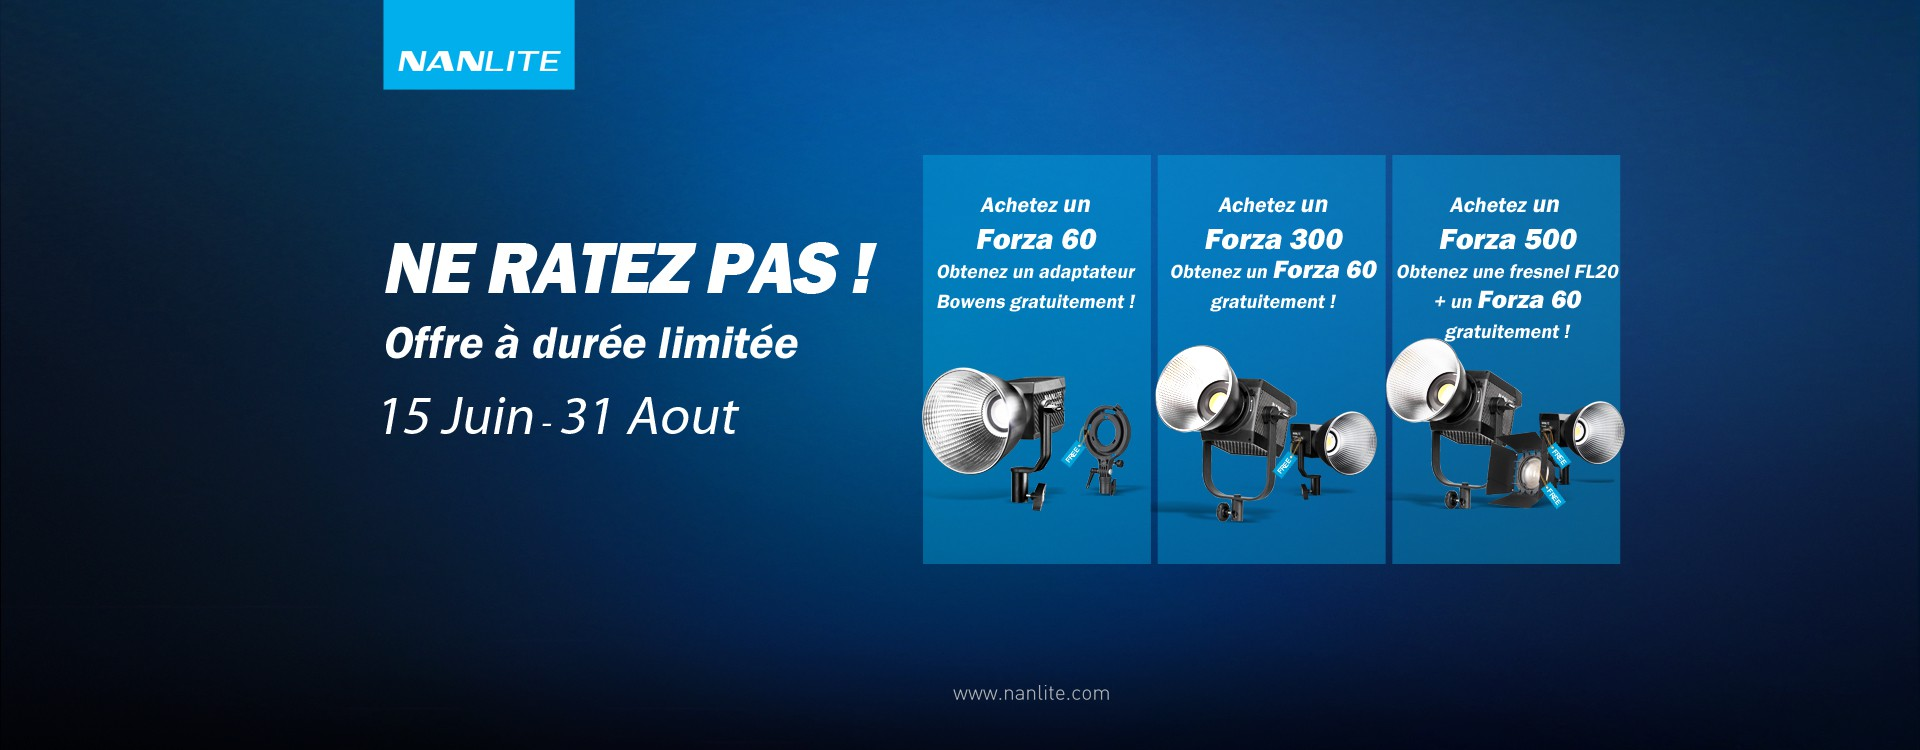 Offre Nanlite - Forza Deal